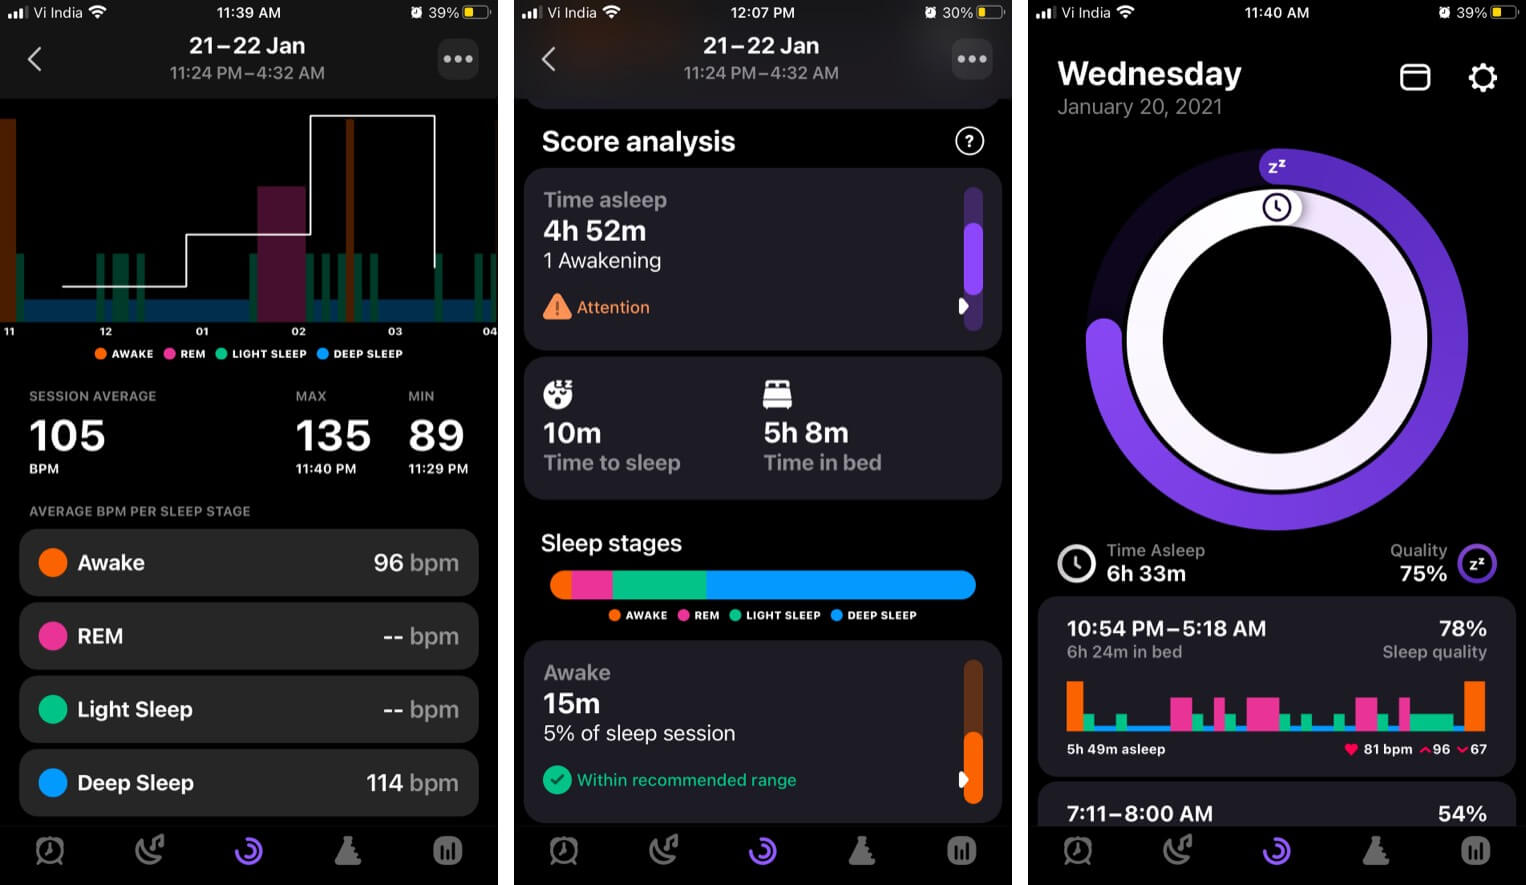 Pillow iPhone app records heart rate analysis and sleep stage diagram